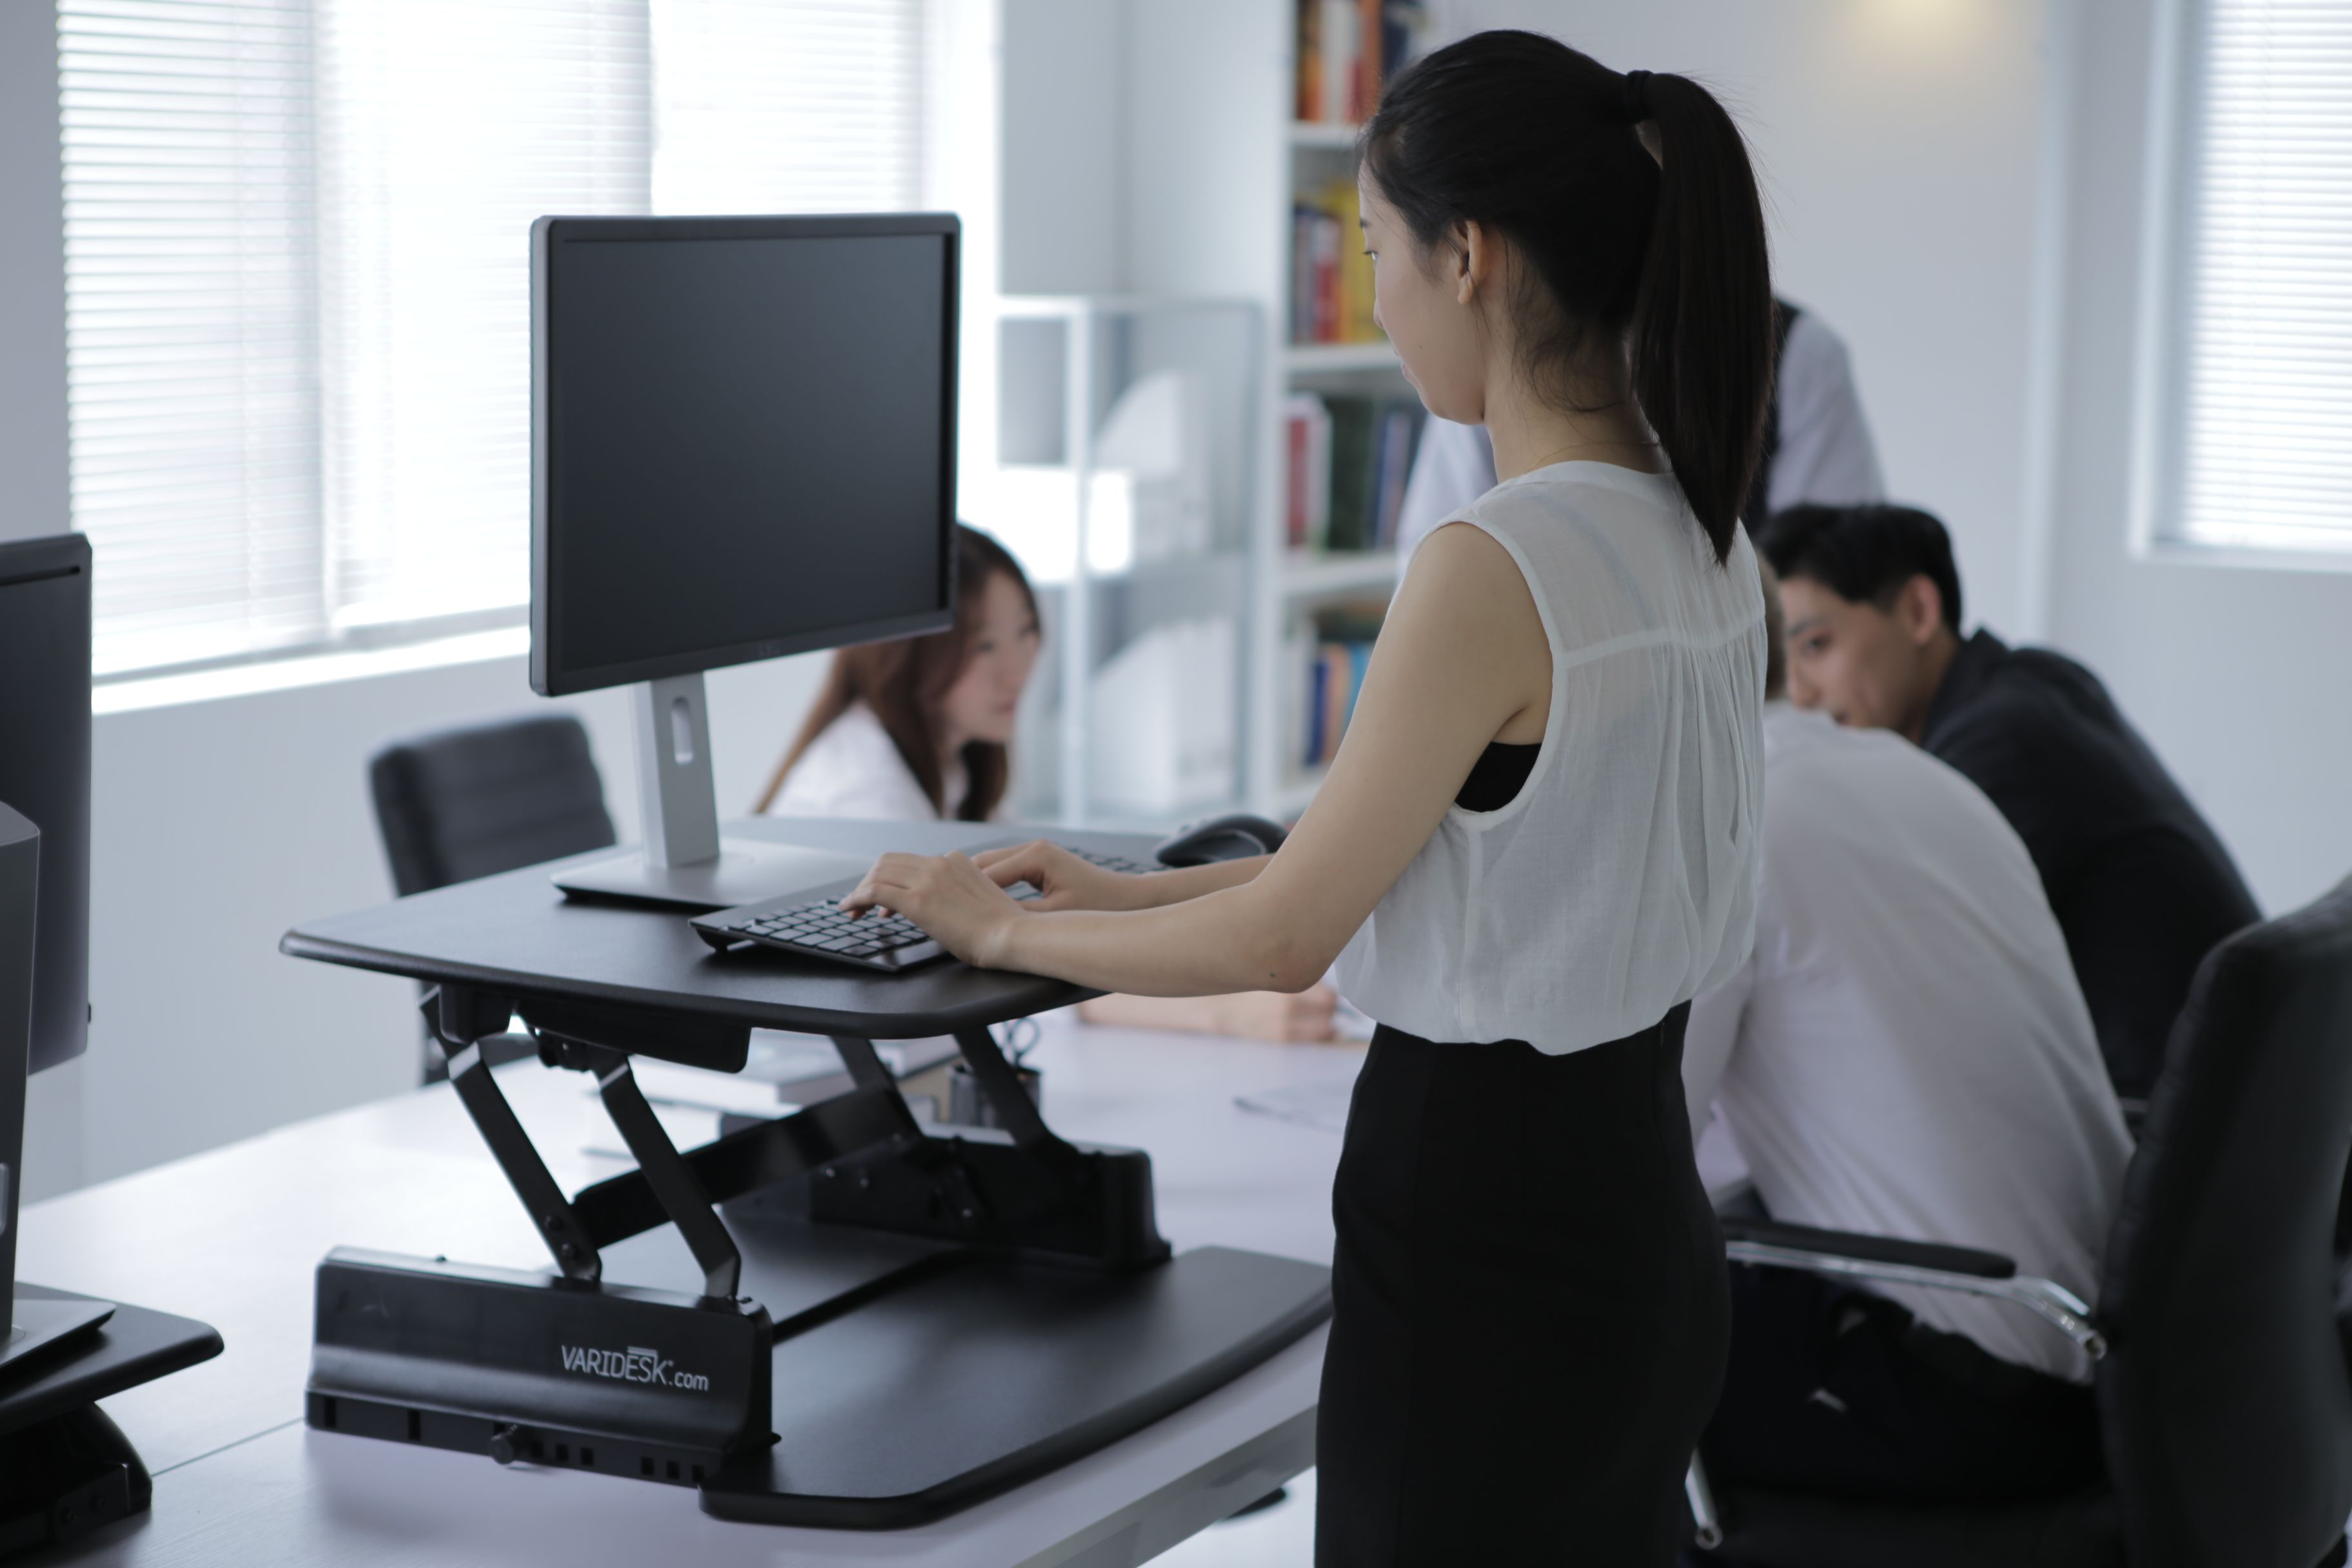 The Varidesk Does Not Need To Be Fully Extended Upwards For Some Members Of Staff